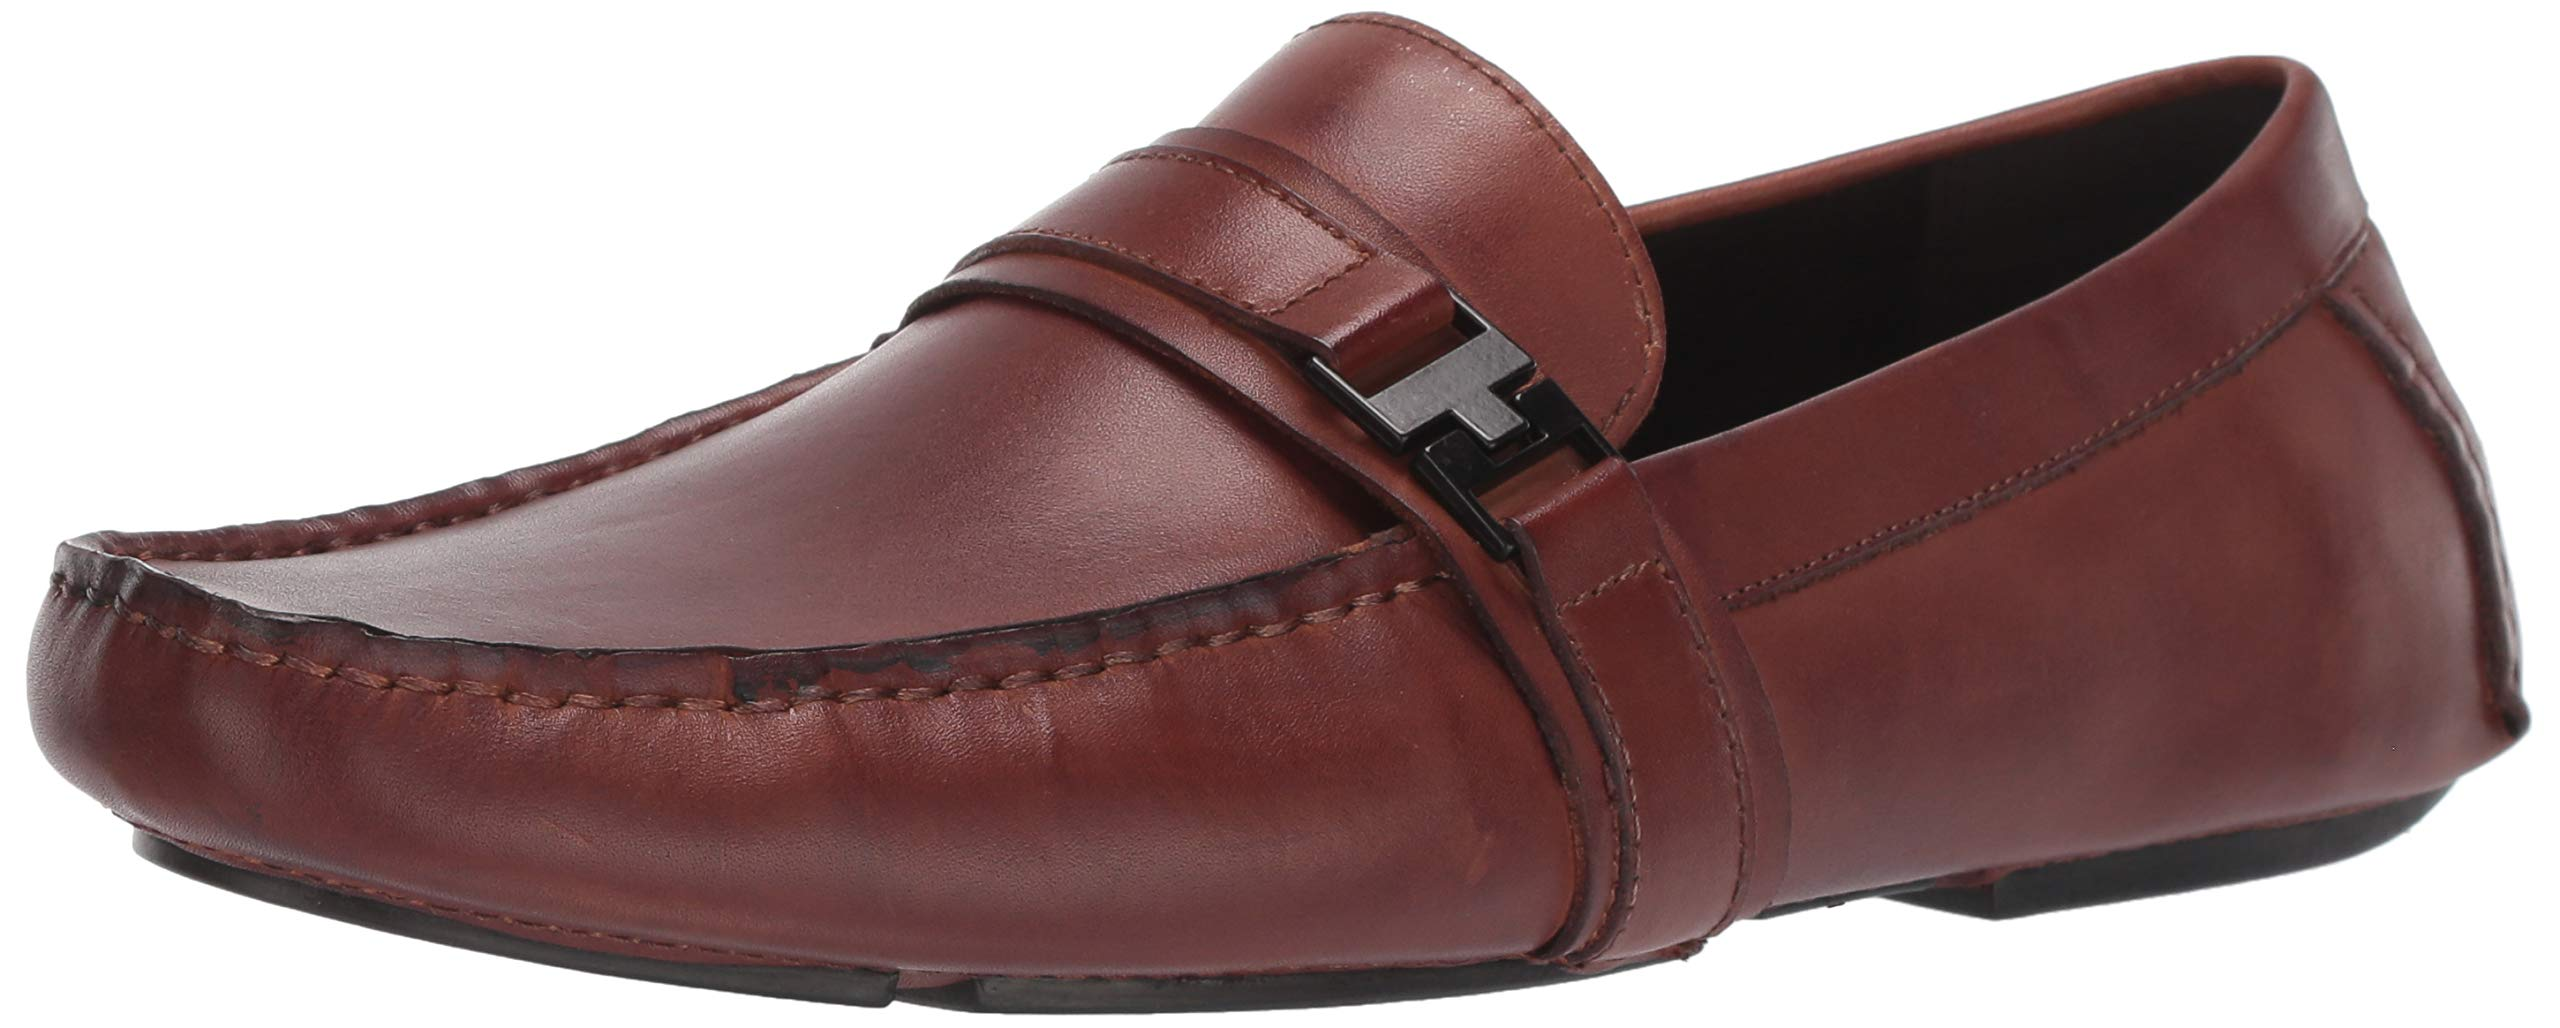 Kenneth Cole REACTION Men's Sound Driver B Driving Style Loafer